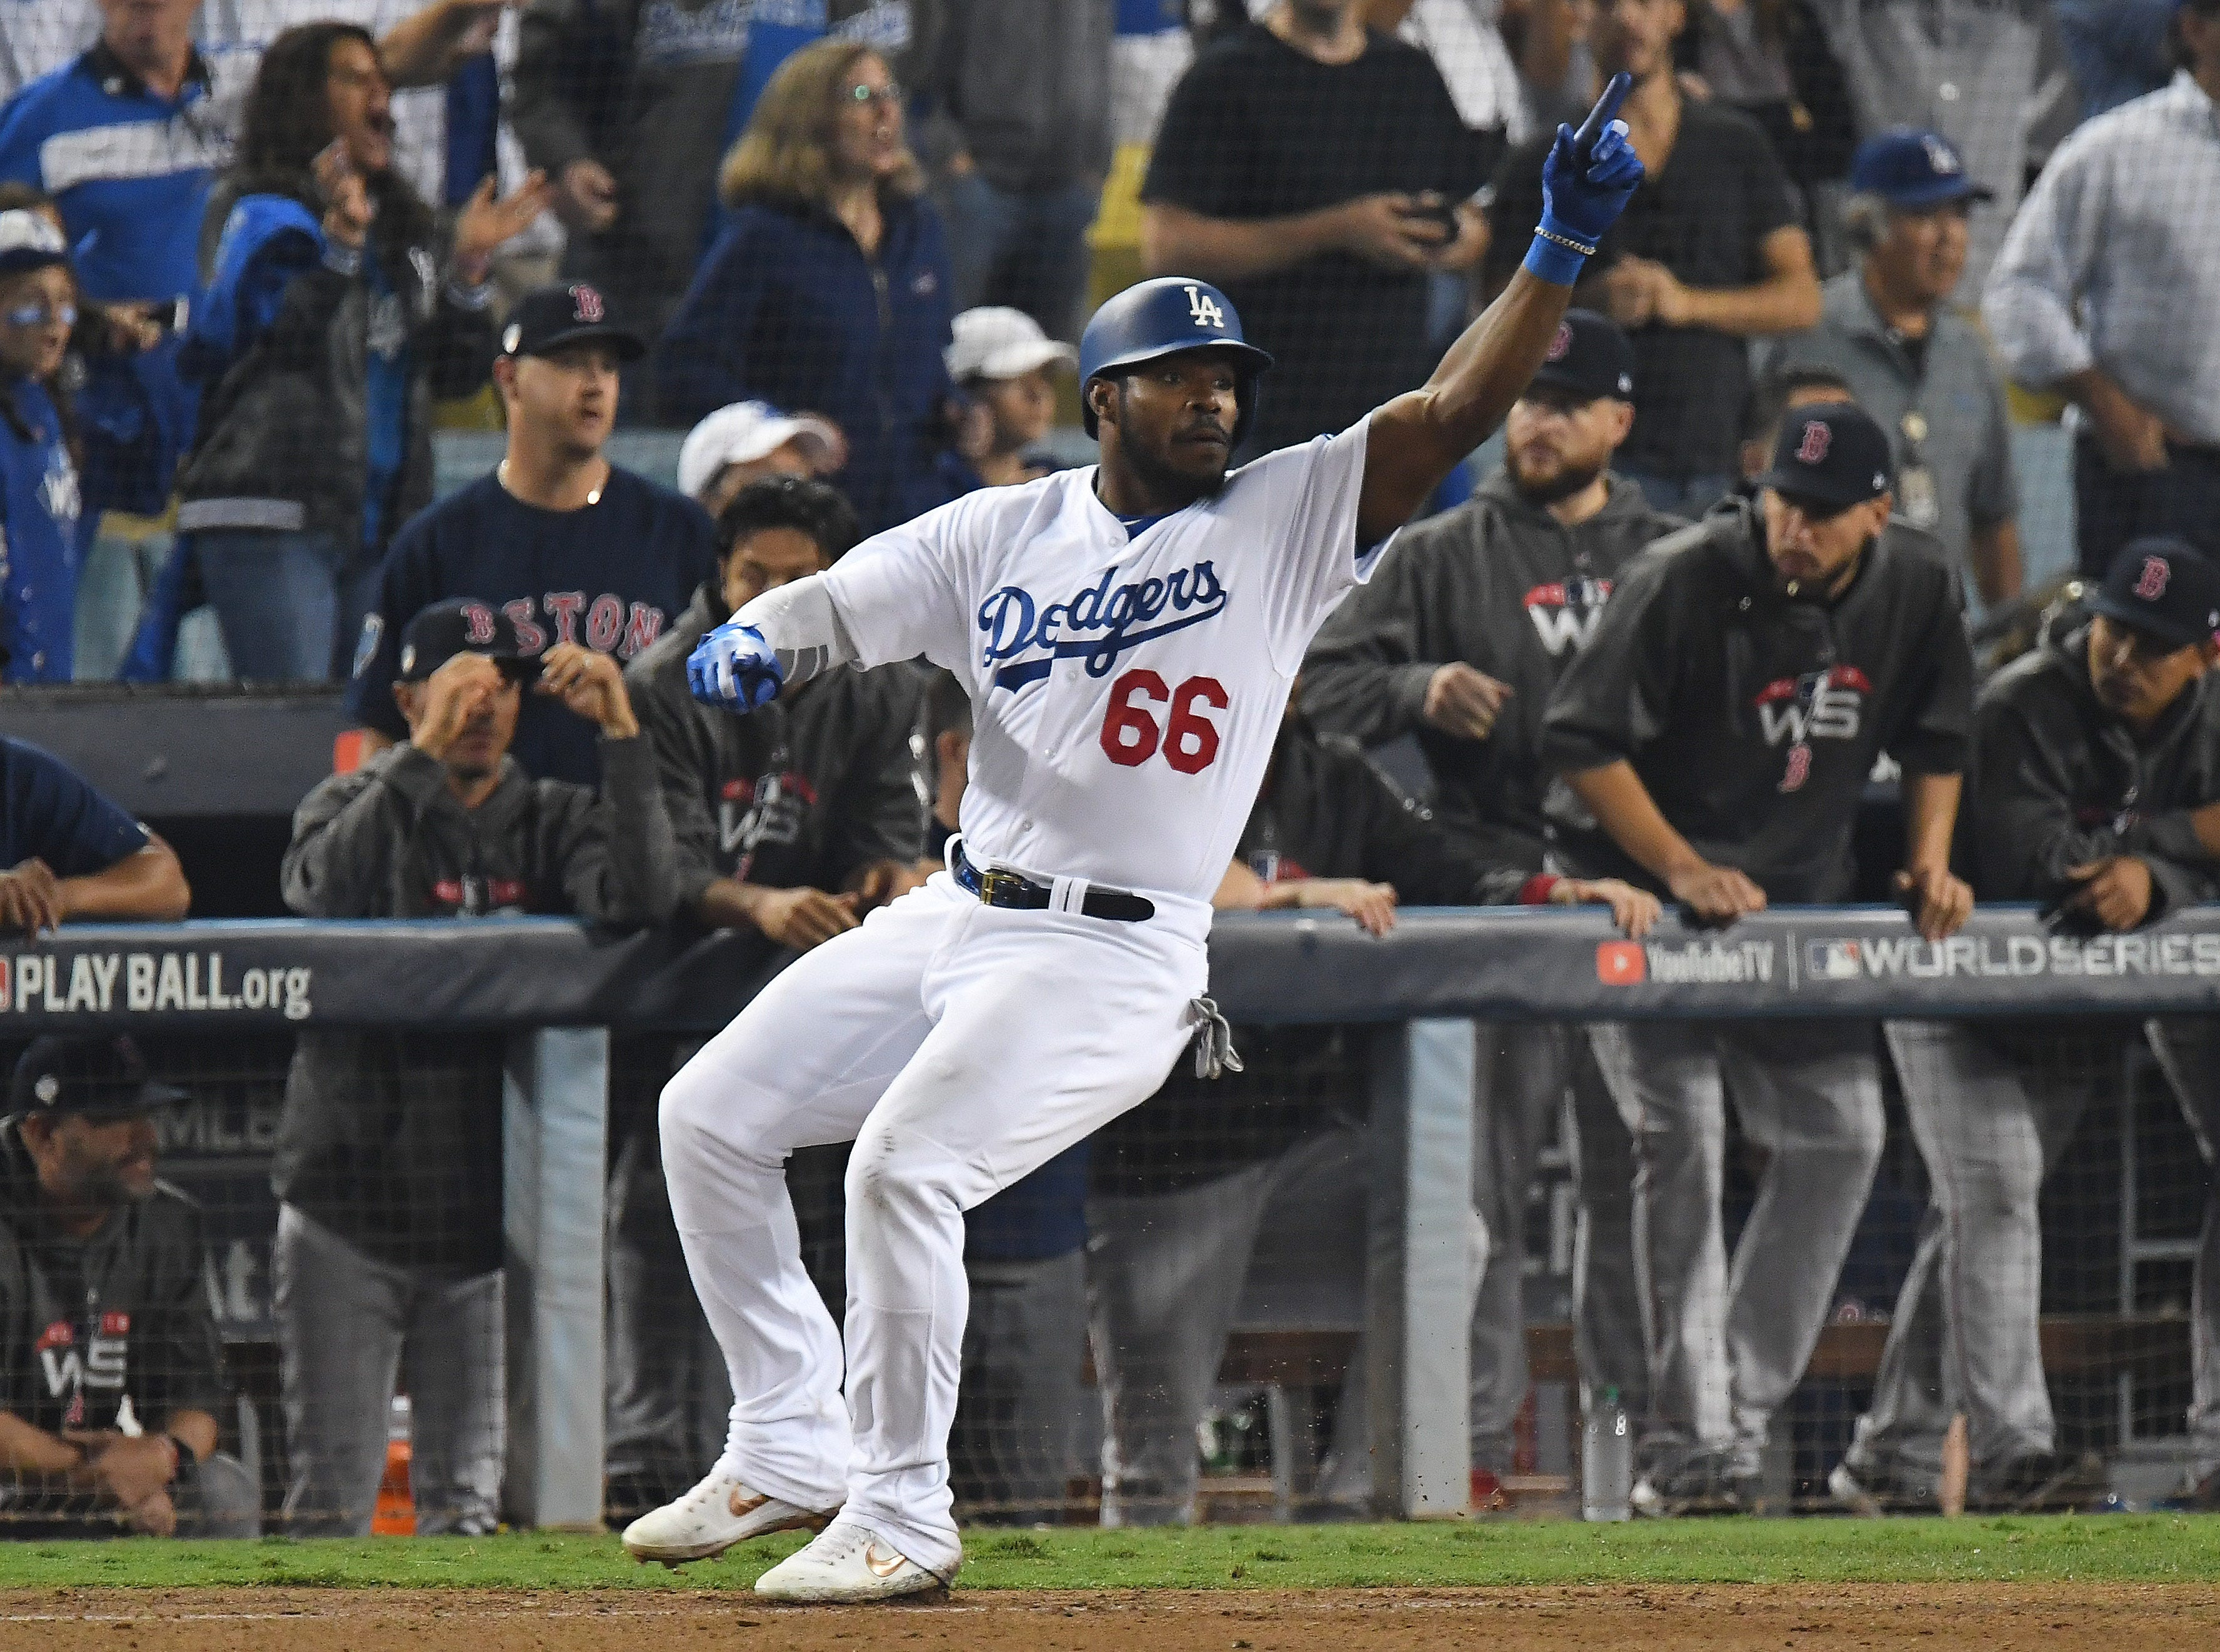 Game 3 at Dodger Stadium: Yasiel Puig reacts after the game-tying run scored in the bottom of the 13th.